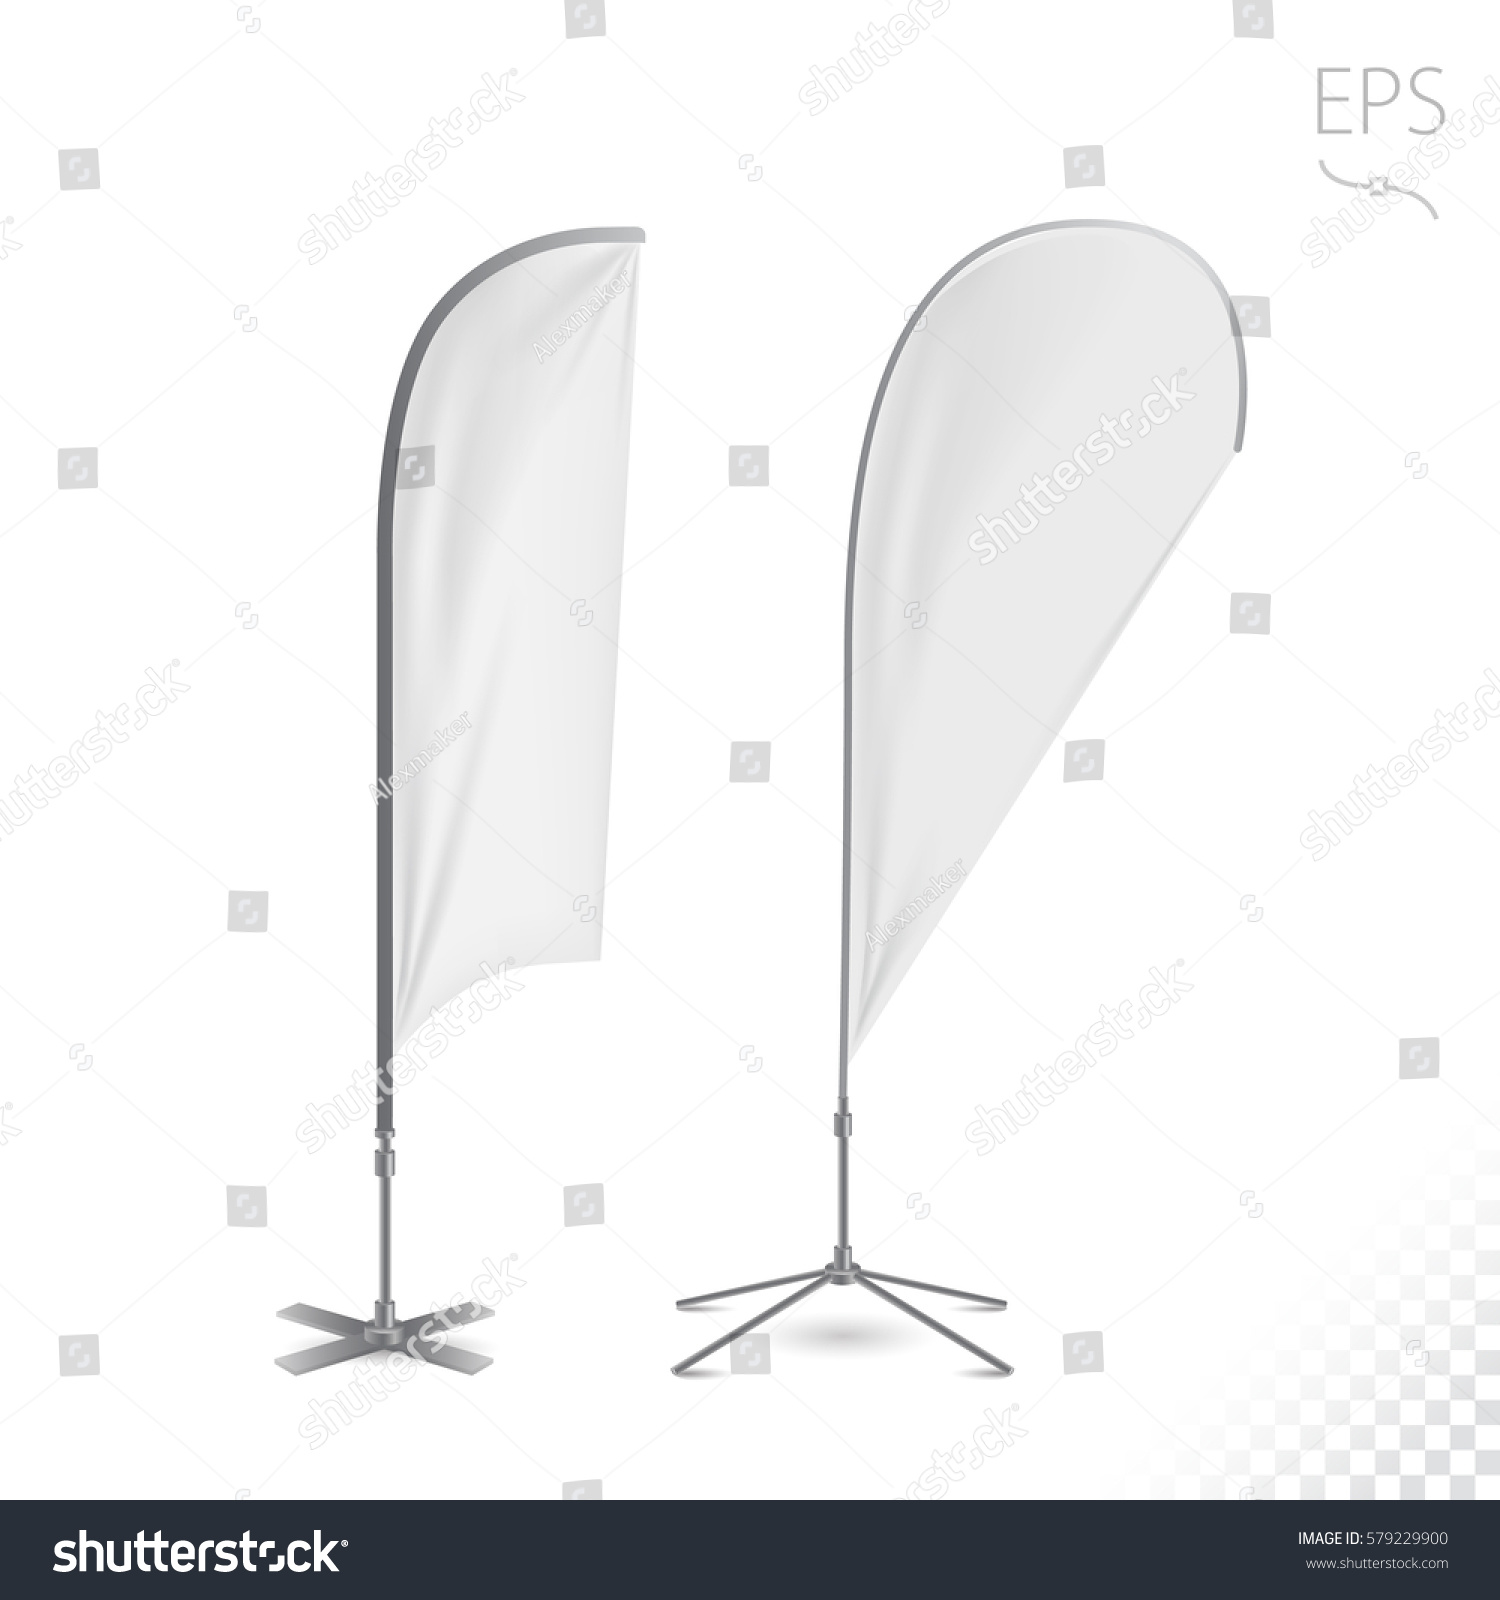 outdoor feather flag advertising banner shield stock vector 579229900 shutterstock. Black Bedroom Furniture Sets. Home Design Ideas